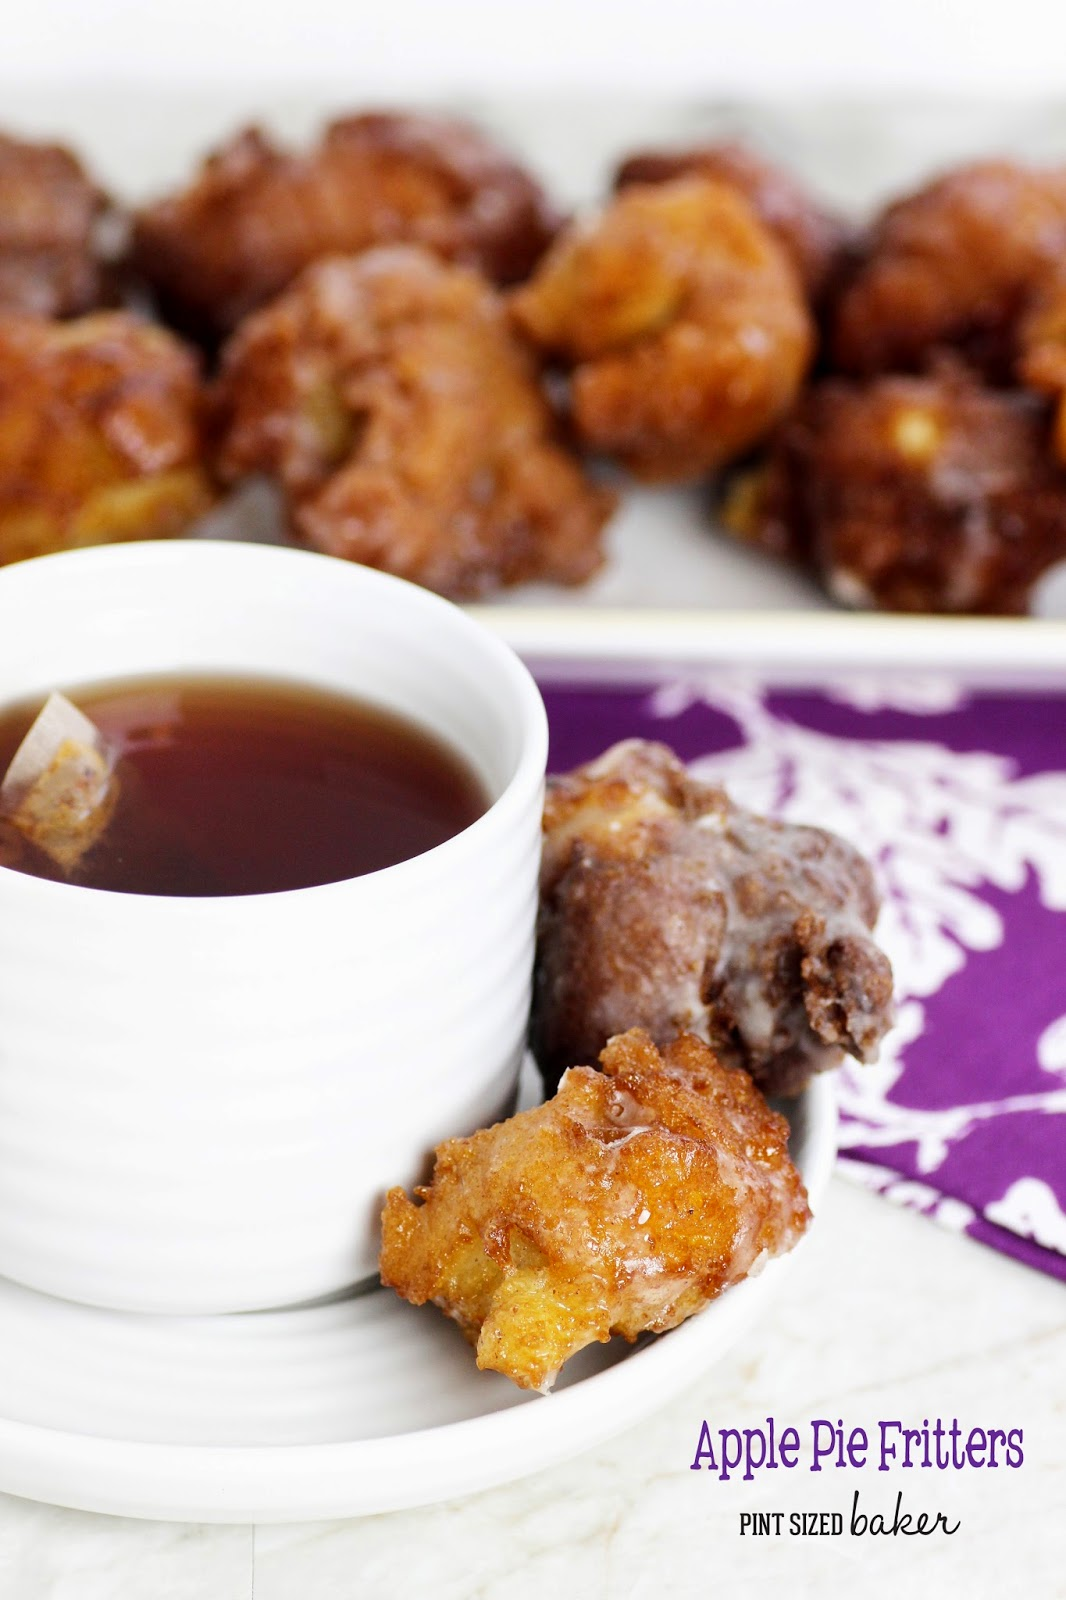 Make some homemade Apple Pie Fritters. There's more than enough to feed your hungry crowd!